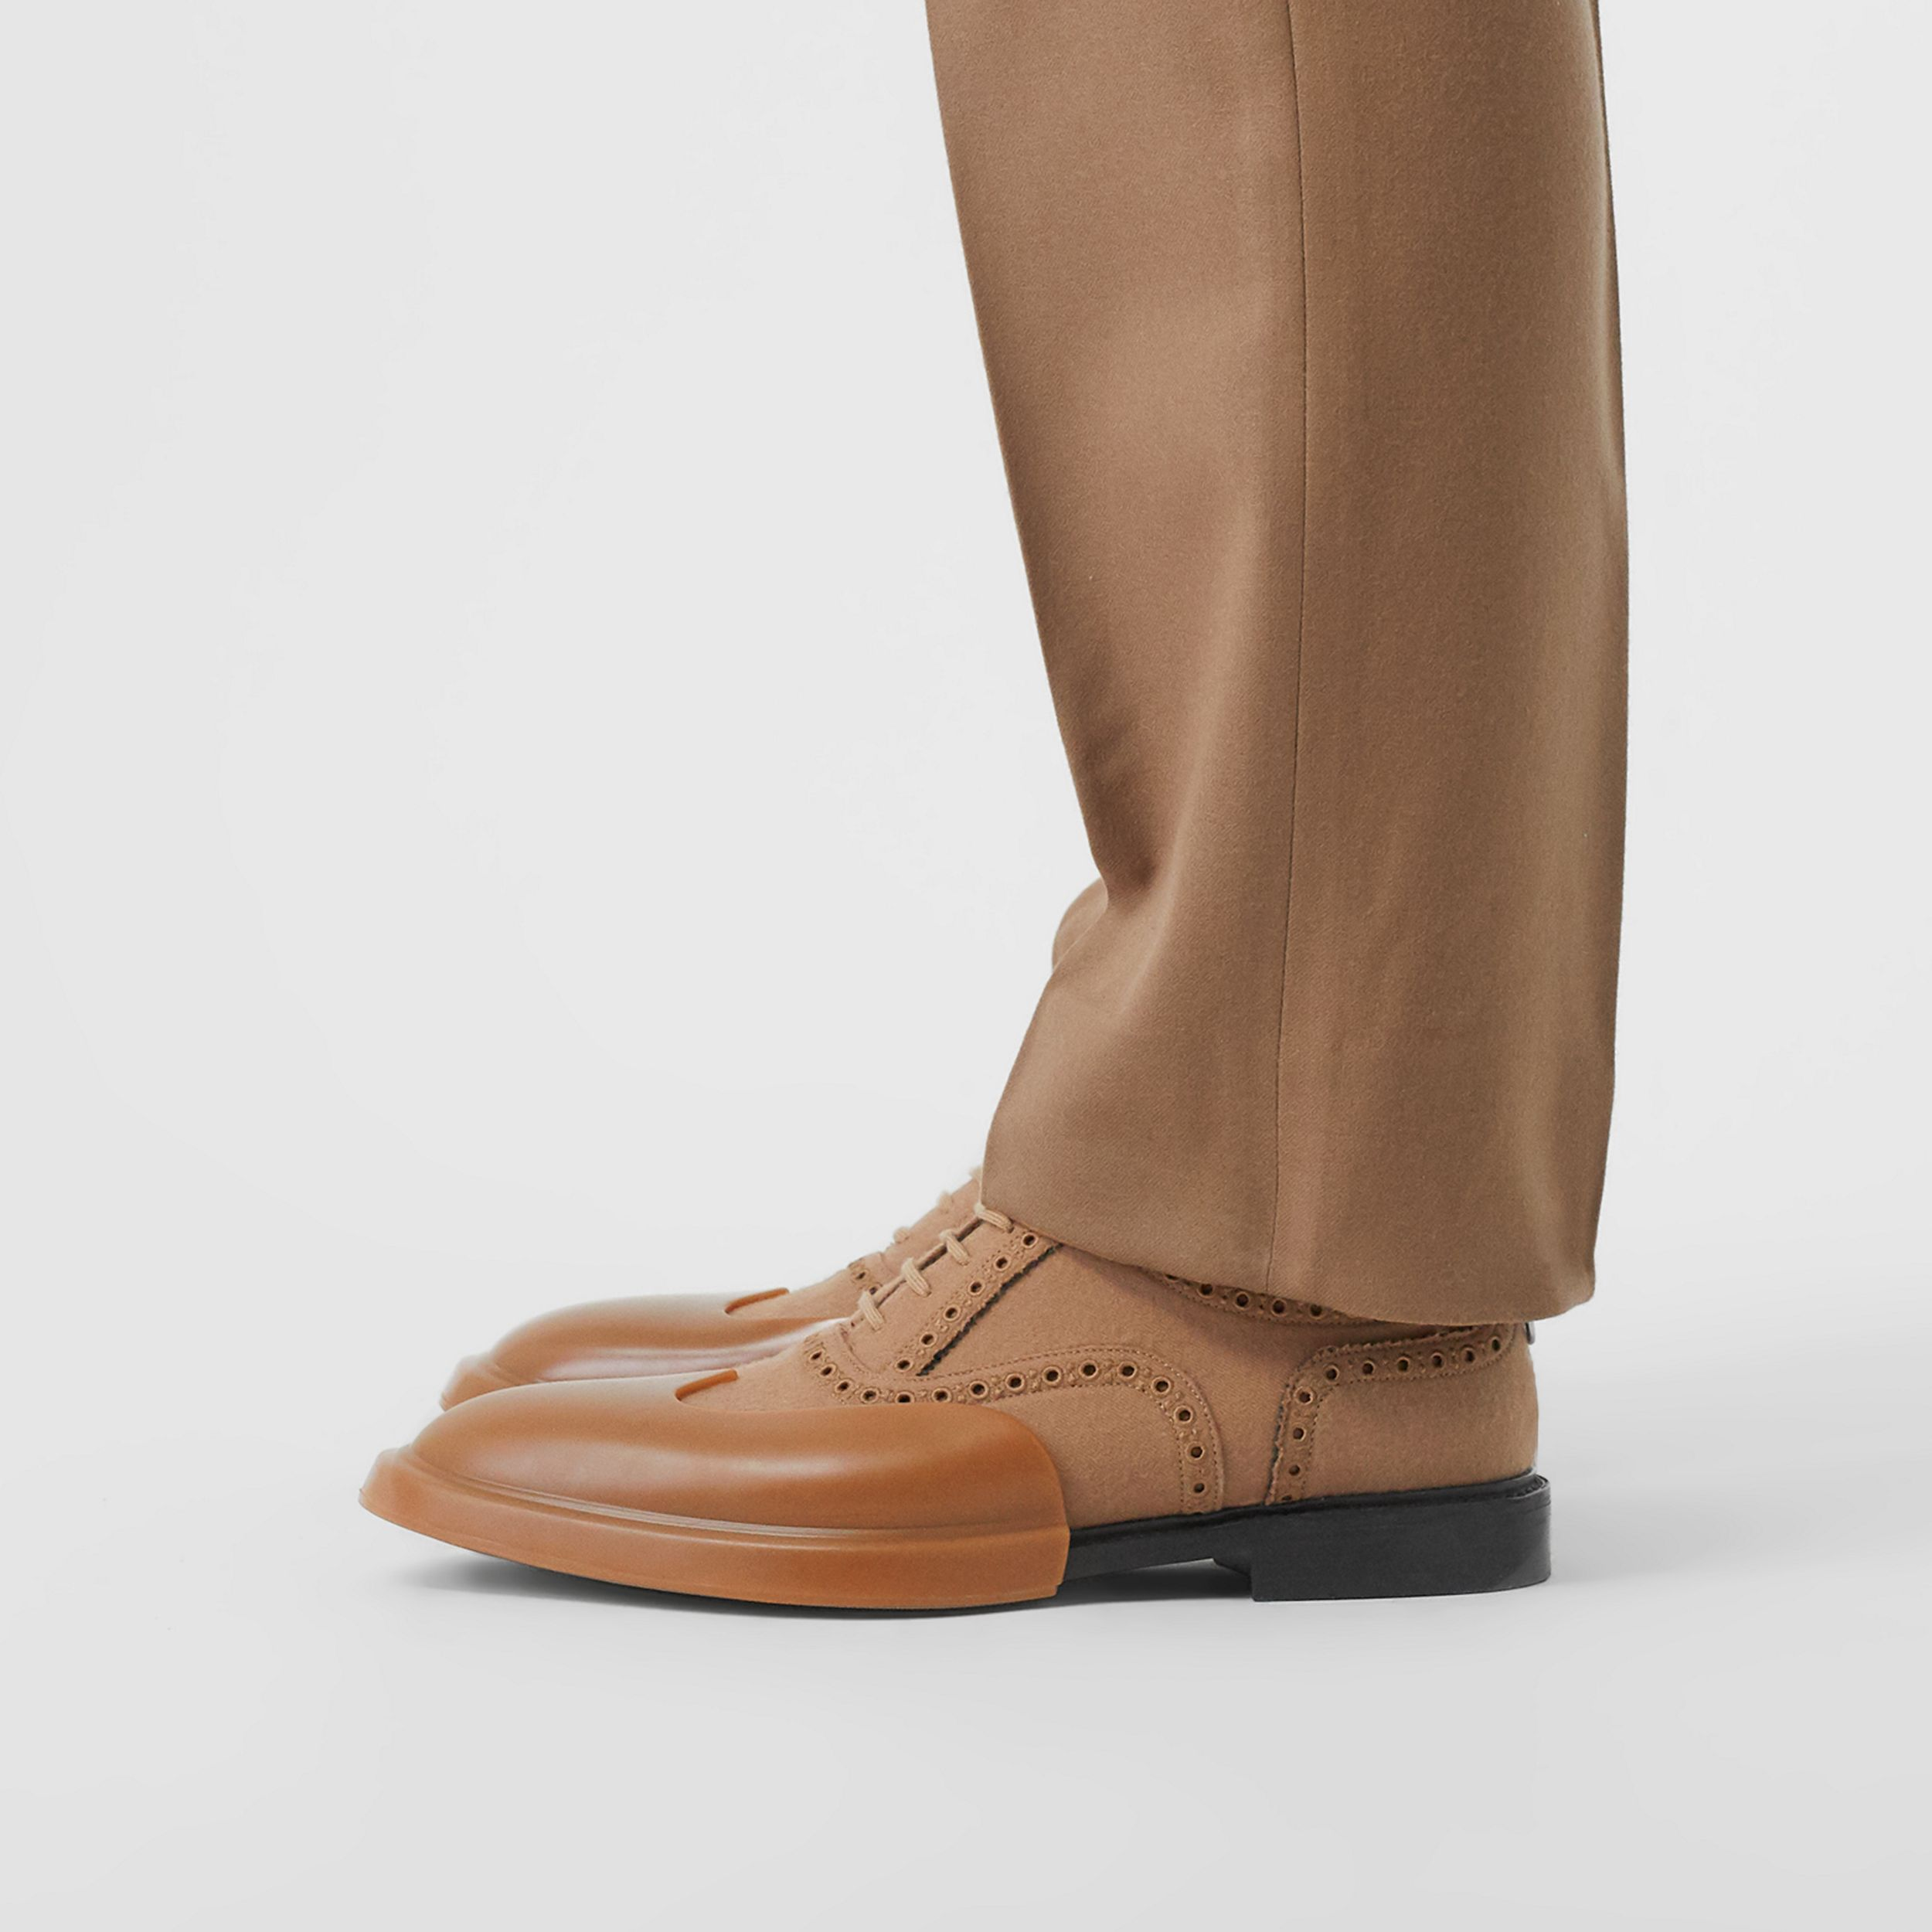 Toe Cap Detail Wool Oxford Brogues in Warm Camel - Men | Burberry Hong Kong S.A.R - 3